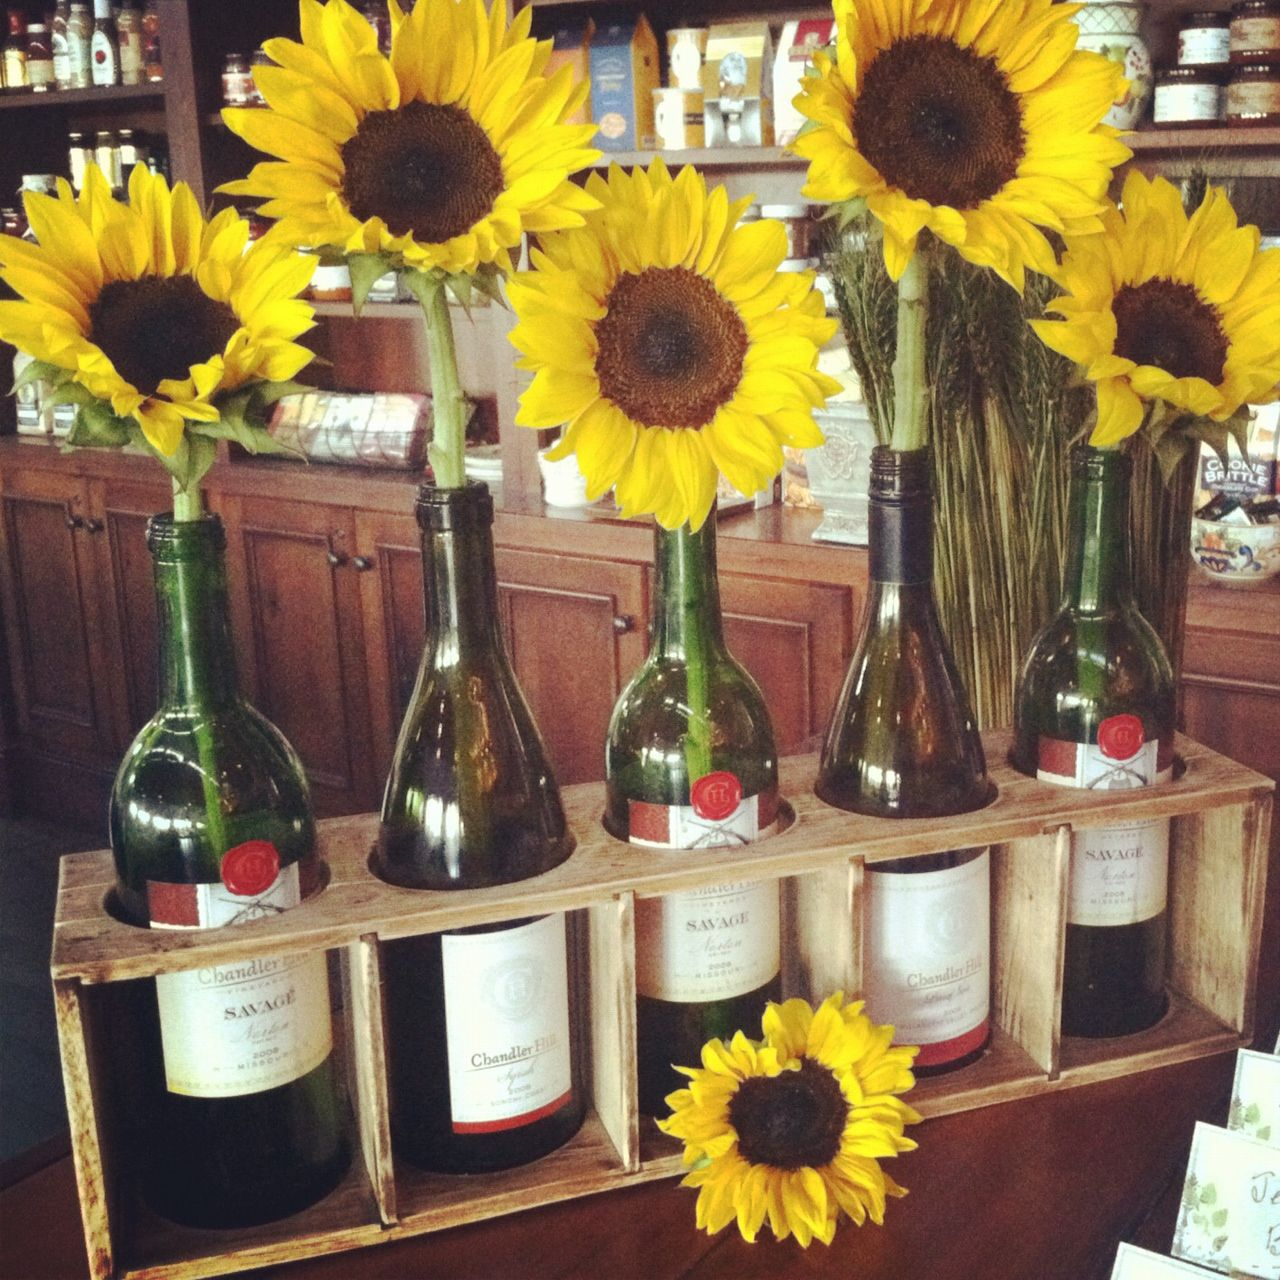 Wedding decorations with wine bottles  Celeste and Pearl I A Lifestyle Blog Rustic Winery PreWedding